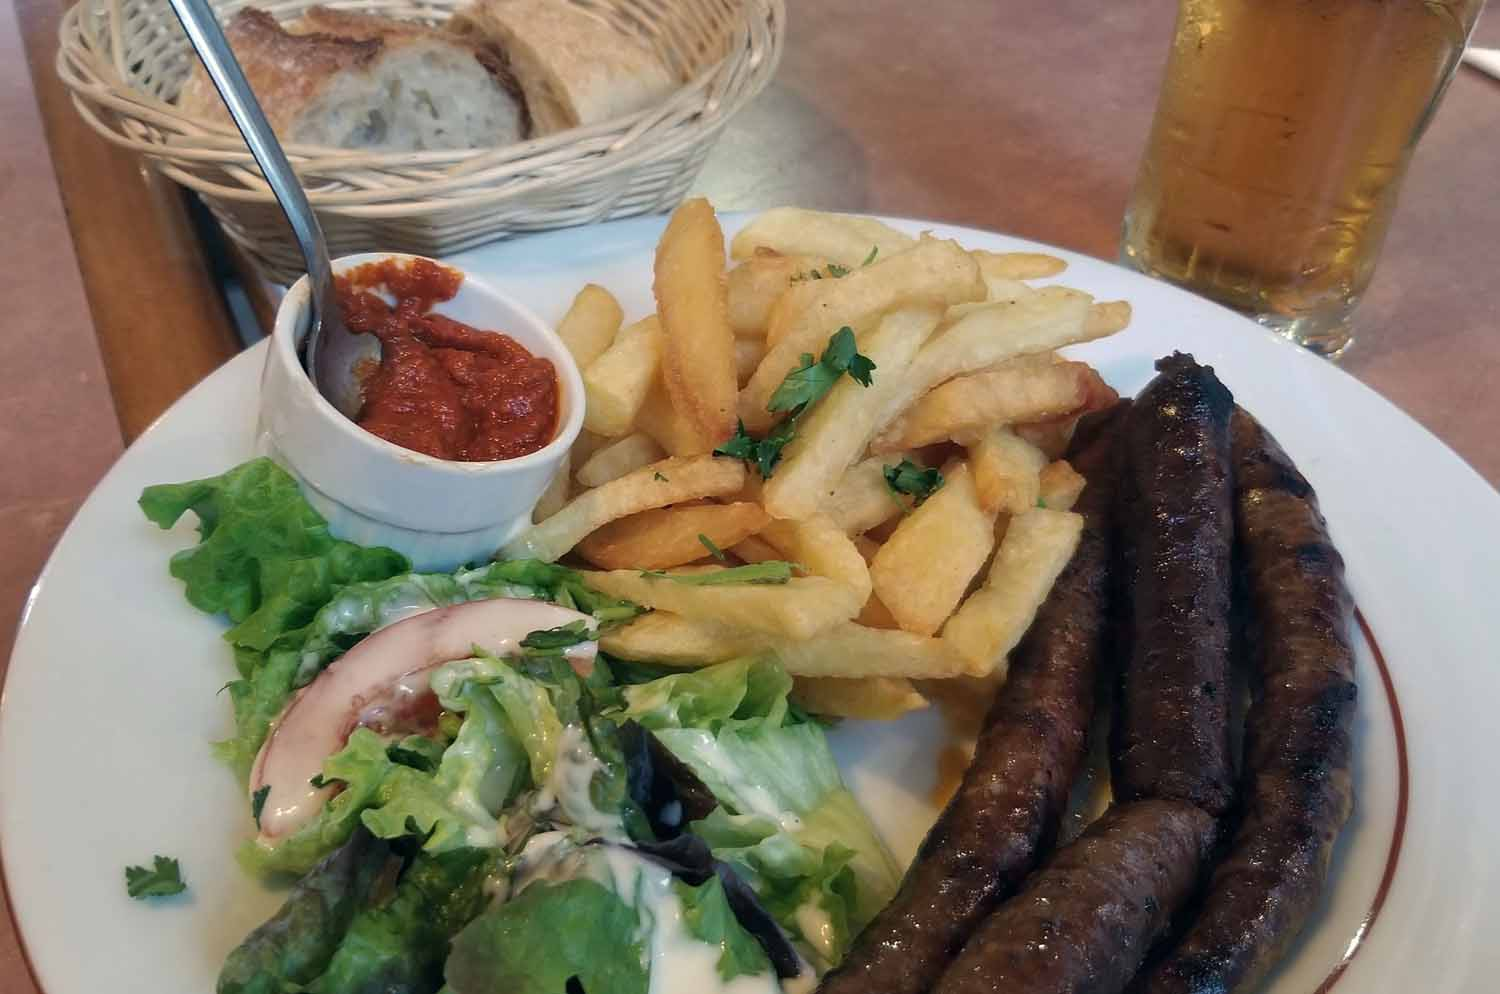 France-Paris-Food-And-Drink-Sausage